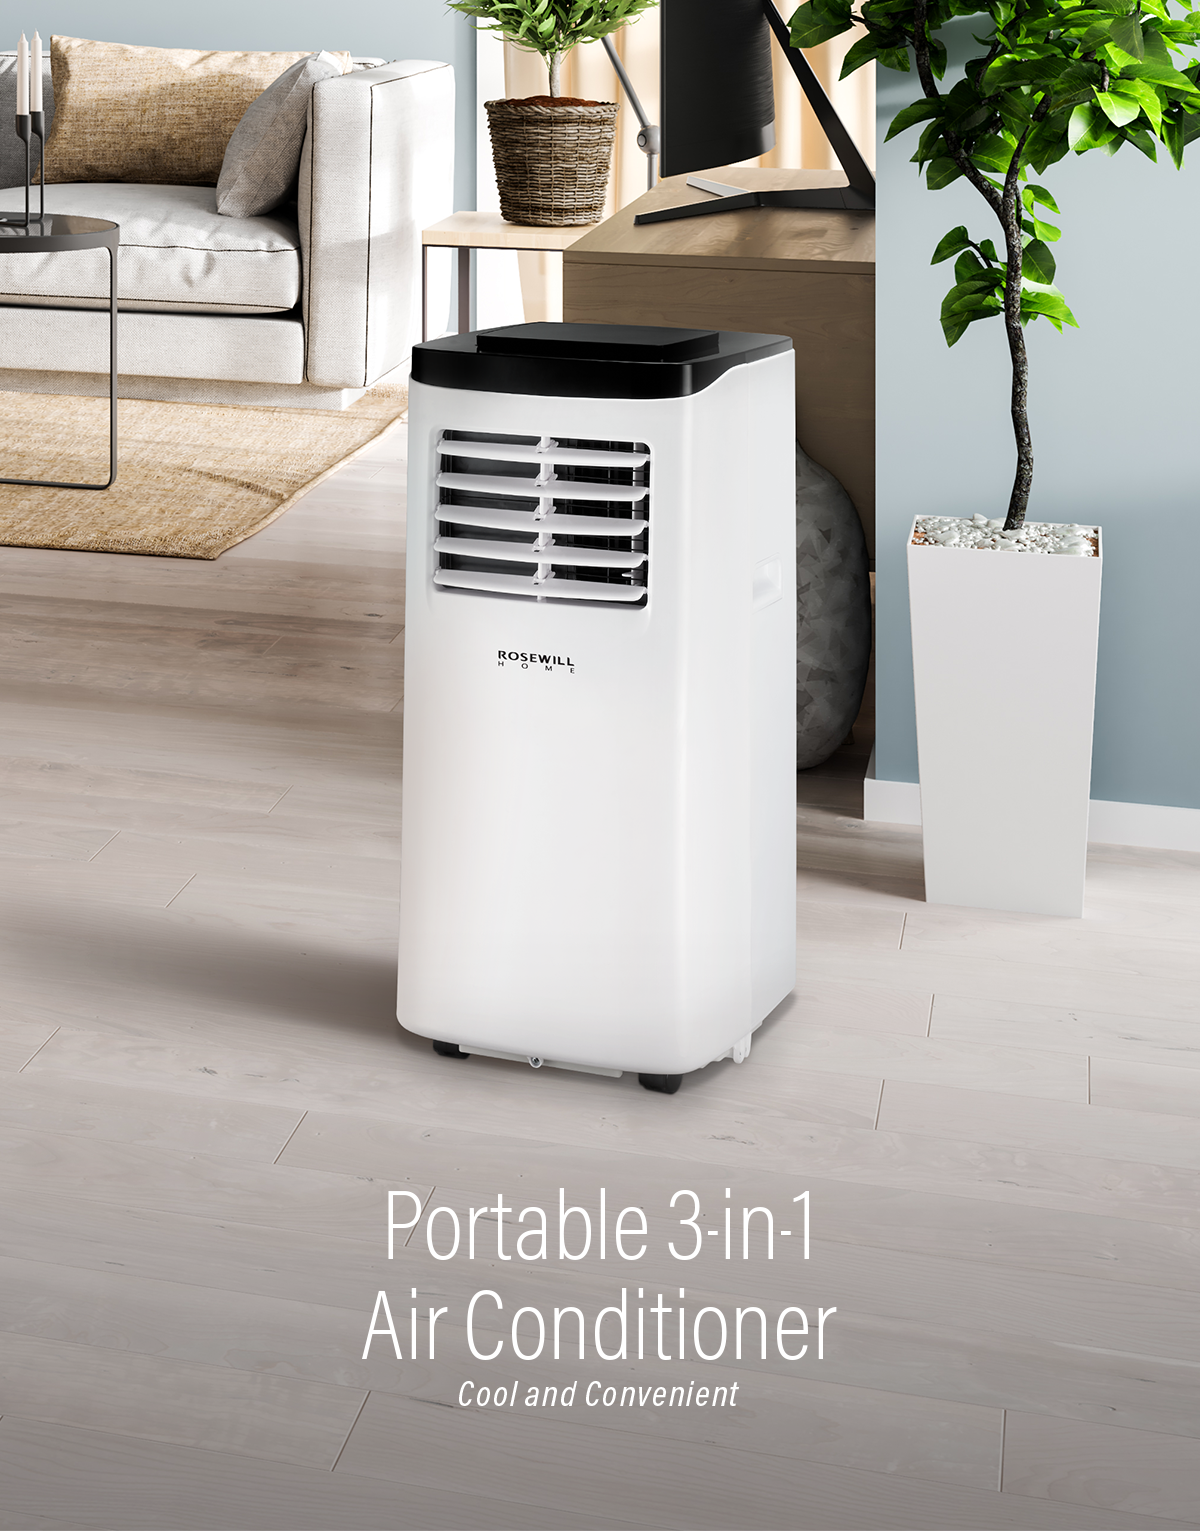 Rosewill Portable Air Conditioner Fan Amp Dehumidifier 3 In